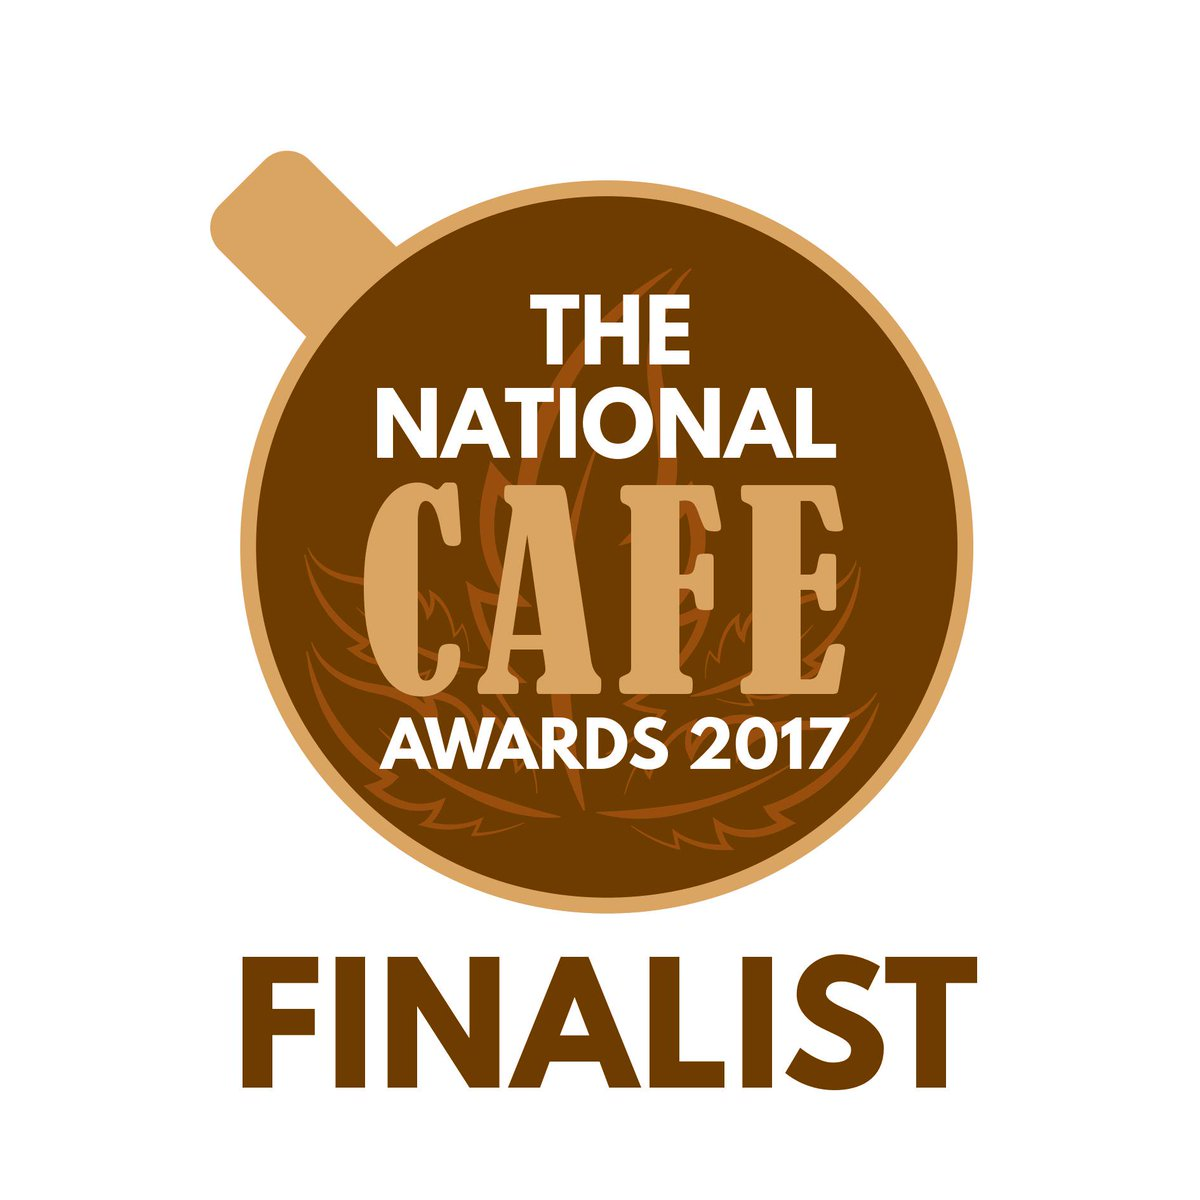 Incredibly proud to be FINALISTS in the &#39;Most Welcoming Cafe of the Year – Wales&#39; category at the #NationalCafeAwards  Thank you / Diolch!! <br>http://pic.twitter.com/uKiYa4fRXB